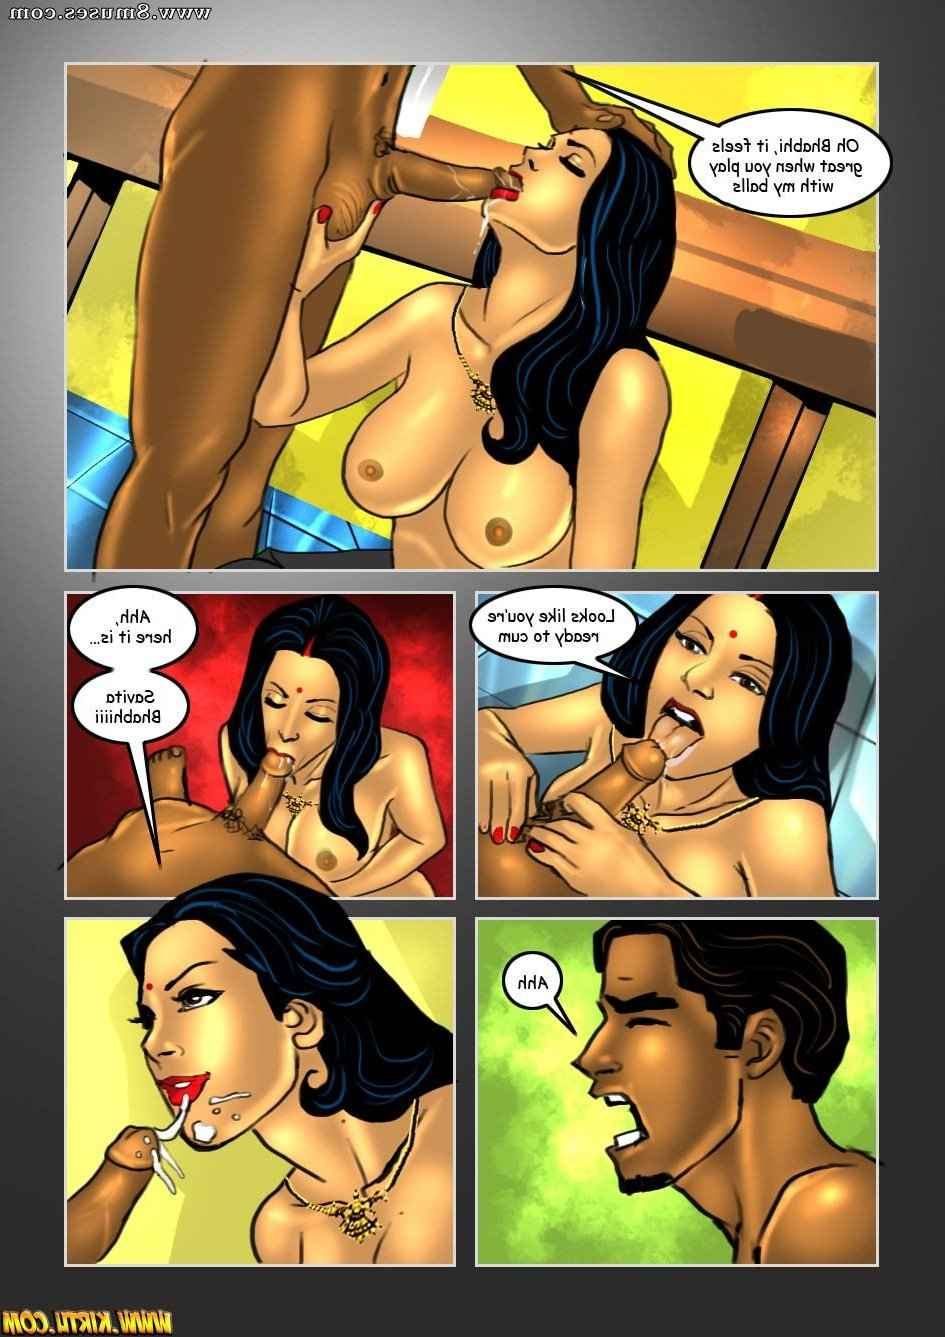 Kirtu_com-Comics/Savita-Bhabhi/Savita-Bhabhi-Episode-17-Double-Trouble-Part-2 Savita_Bhabhi_-_Episode_17__Double_Trouble_Part_2__8muses_-_Sex_and_Porn_Comics_15.jpg